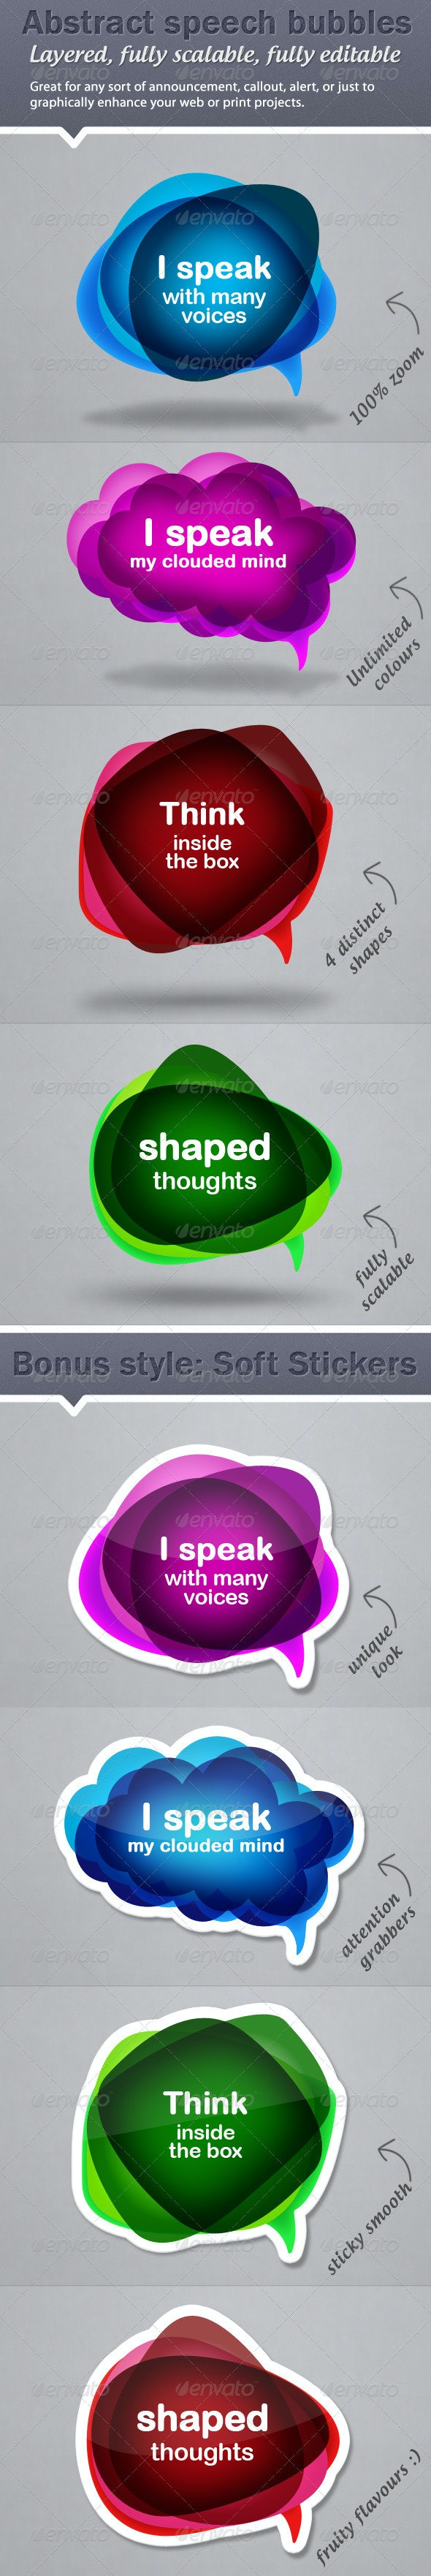 Colourful, Abstract Speech Bubble Callouts - Miscellaneous Social Media